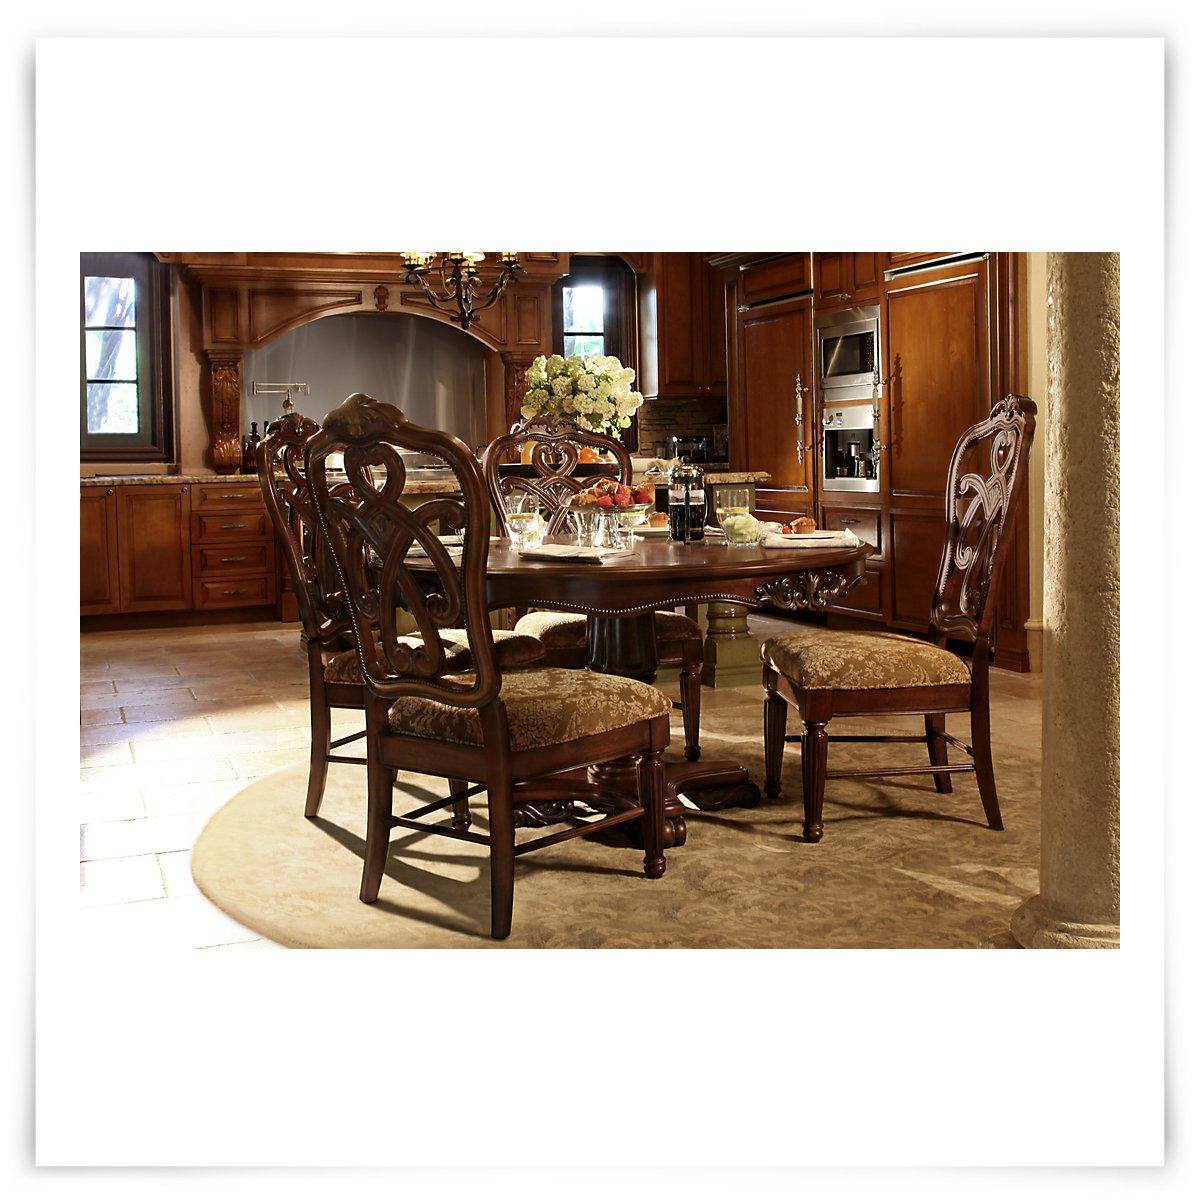 City Furniture Regal Dark Tone Round Table 4 Wood Chairs